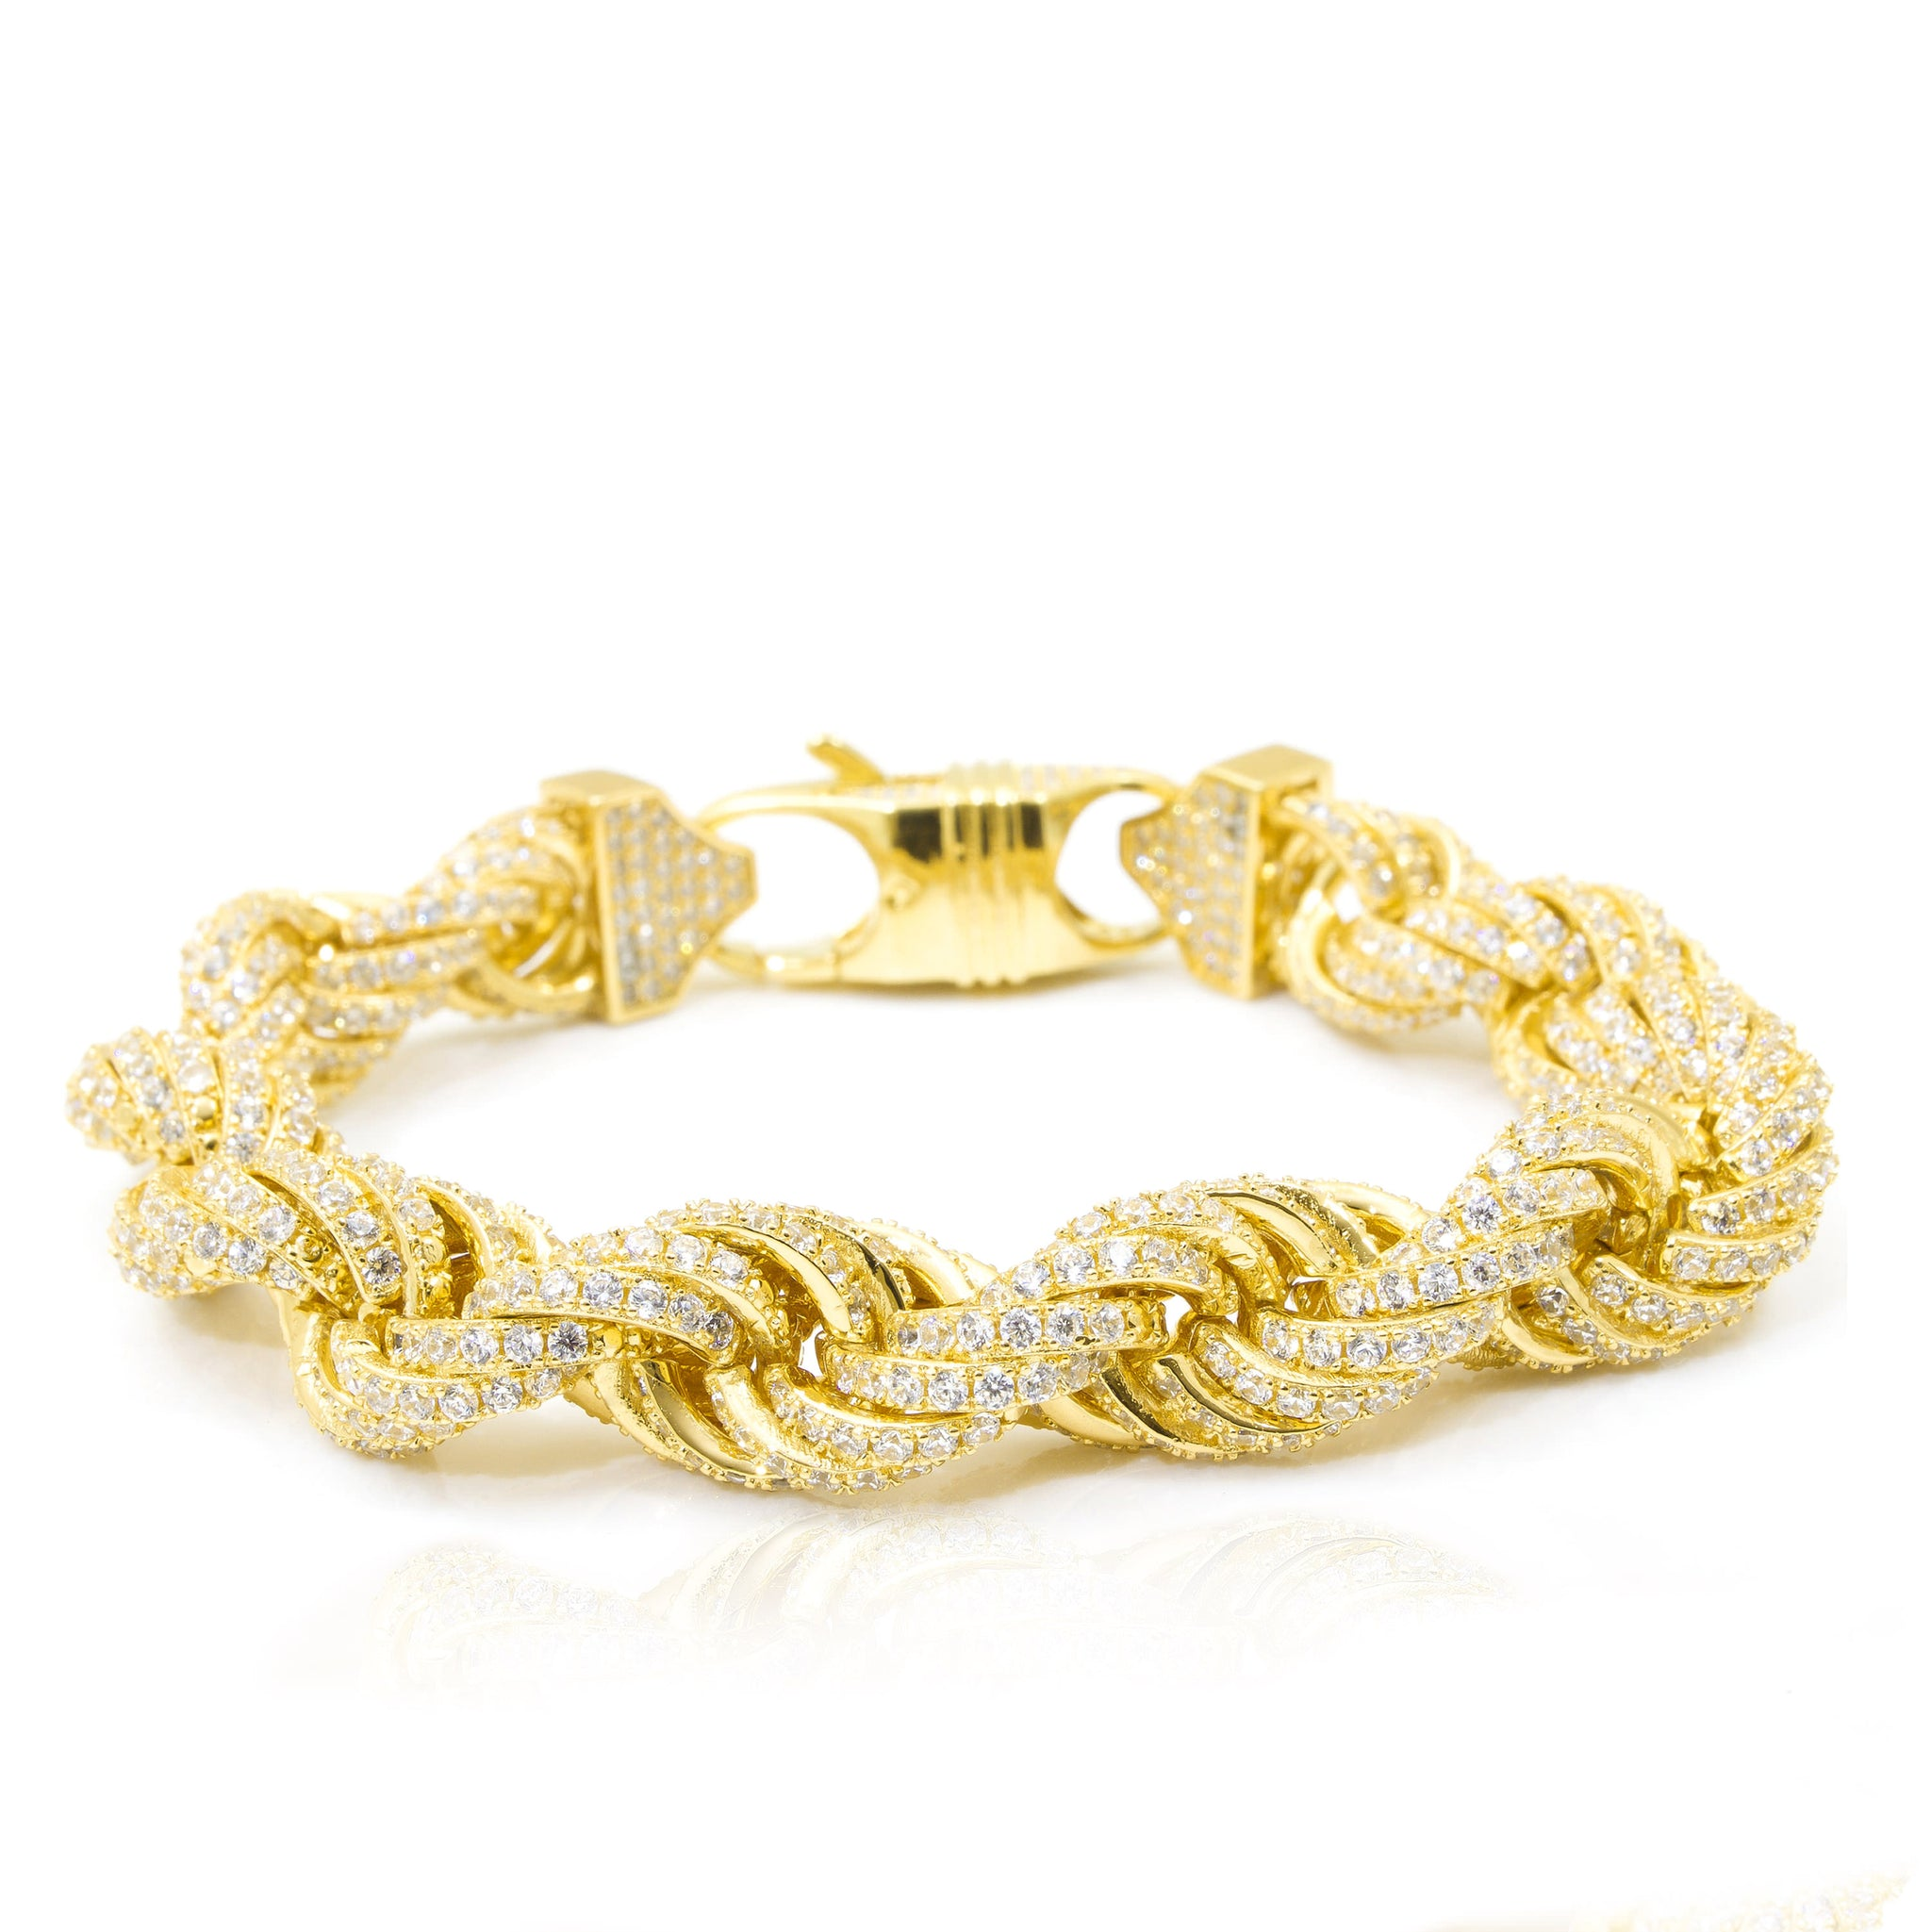 bracelet silky flexible super bangle bangles herringbone inch pin chain gold yellow